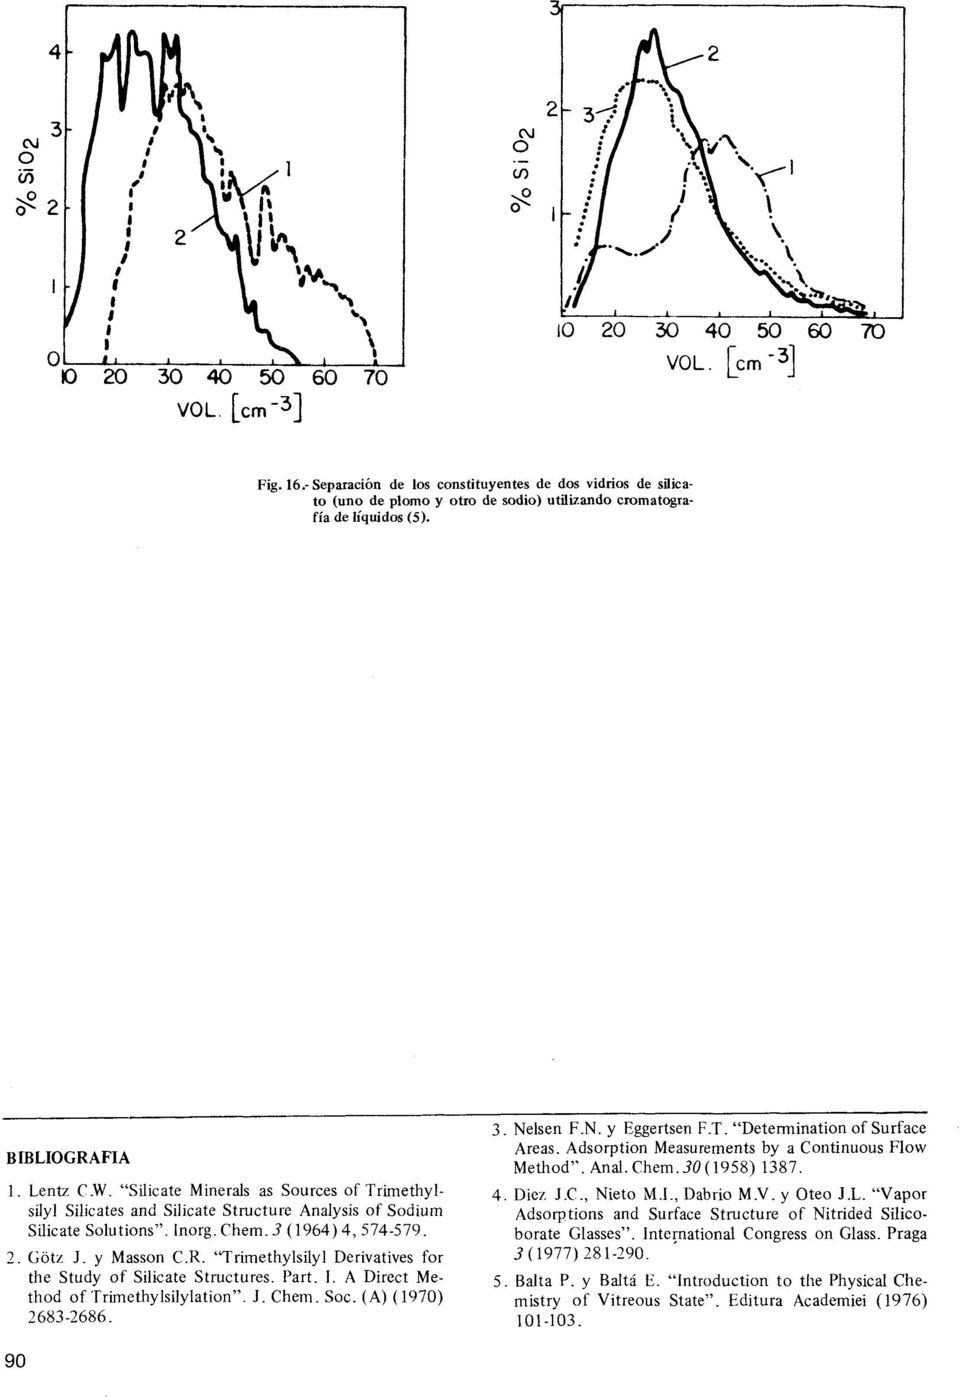 """Silicate Minerals as Sources of Trimethyisilyl Silicates and Silicate Structure Analysis of Sodium Silicate Solutions"". Inorg. Chem. J (1964) 4, 574-579. Götz J. y Masson CR."